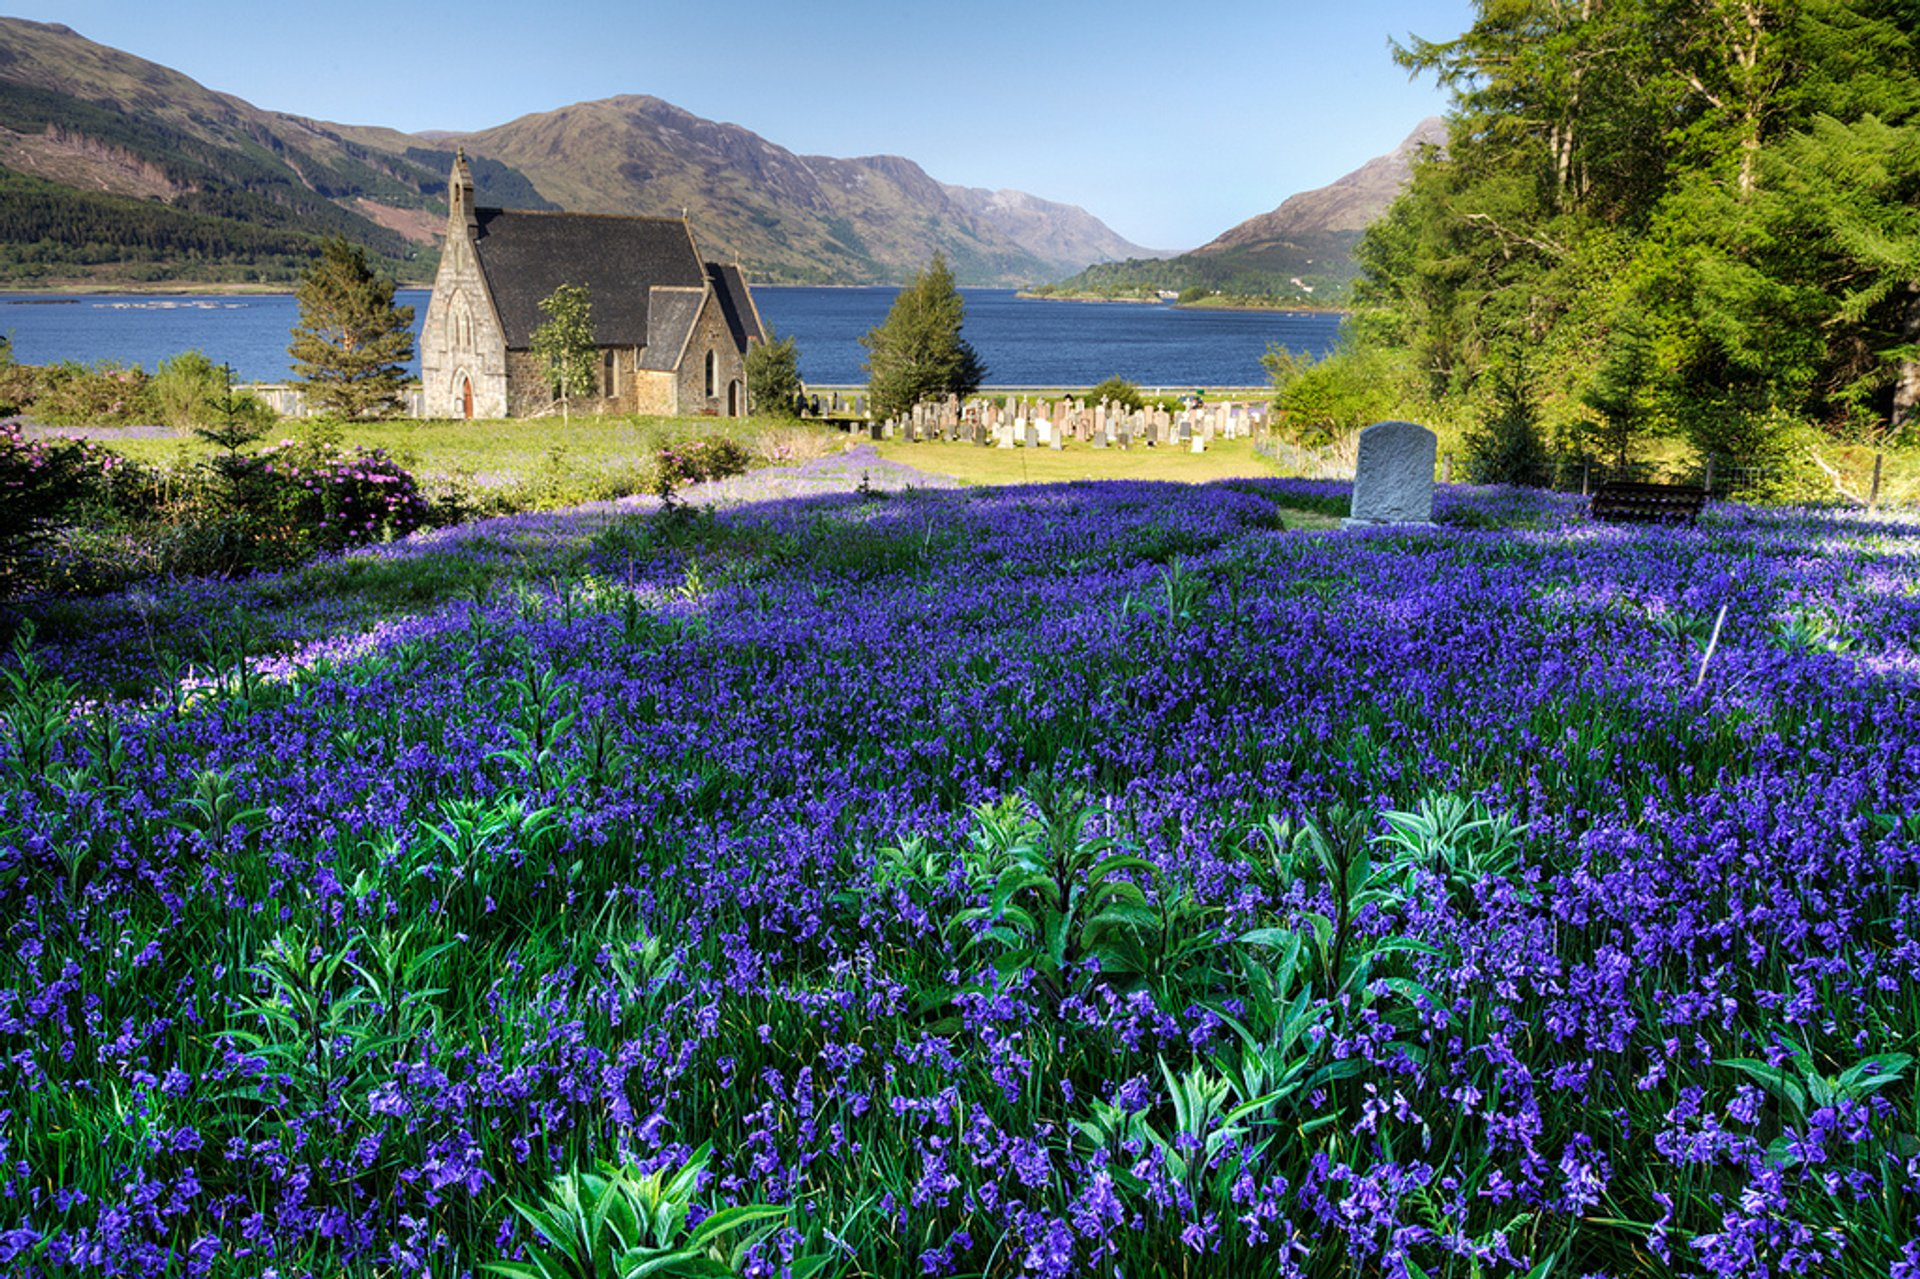 Blooming Bluebells in Scotland 2019 - Best Time